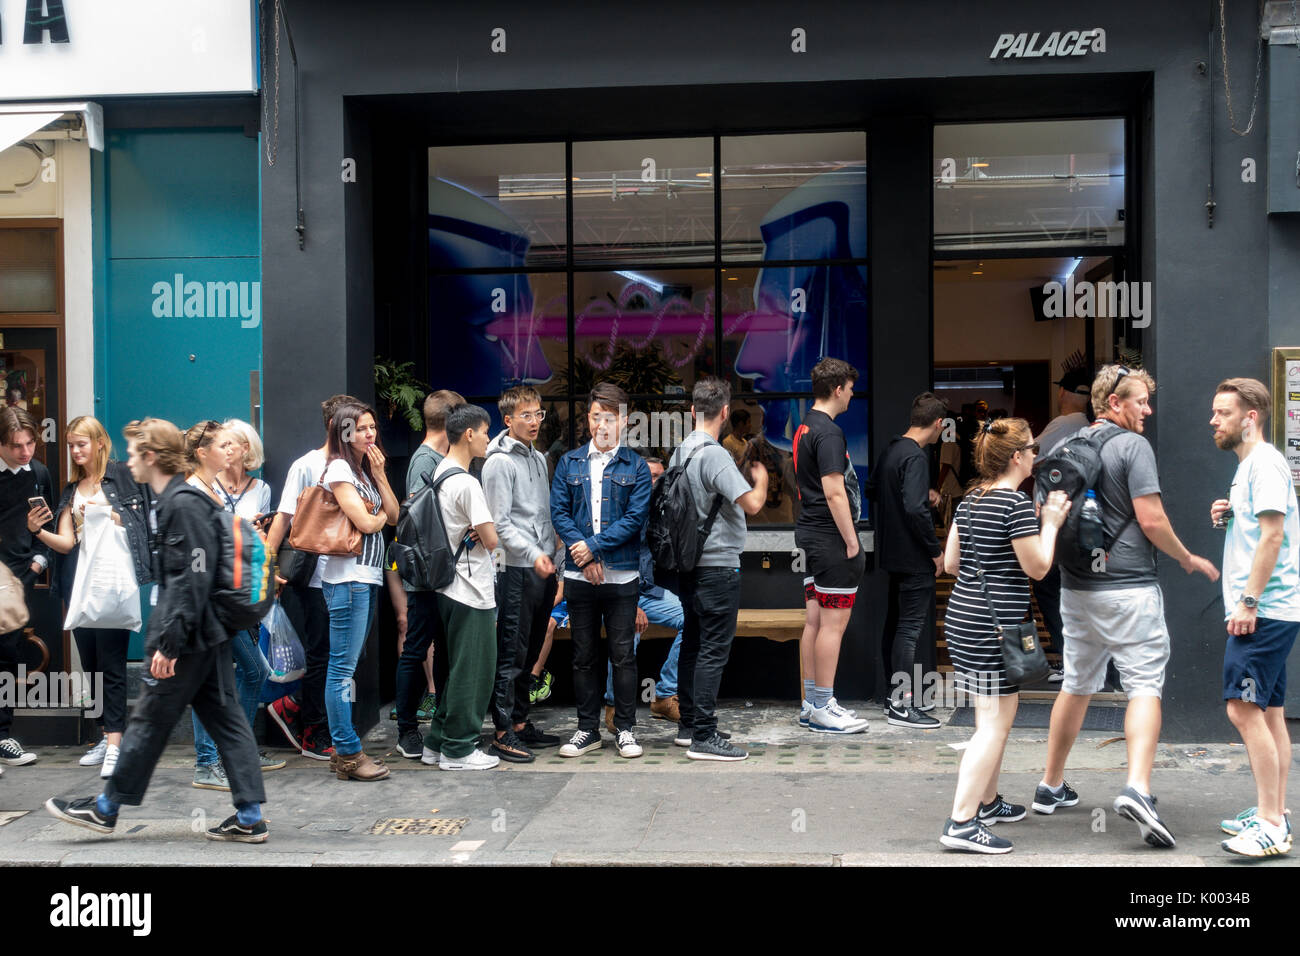 a0eca981 Exterior of Palace skateboard shop, 26 Brewer St, Soho, London W1F 0SW, UK  with long queue of people outside on the pavement sidewalk